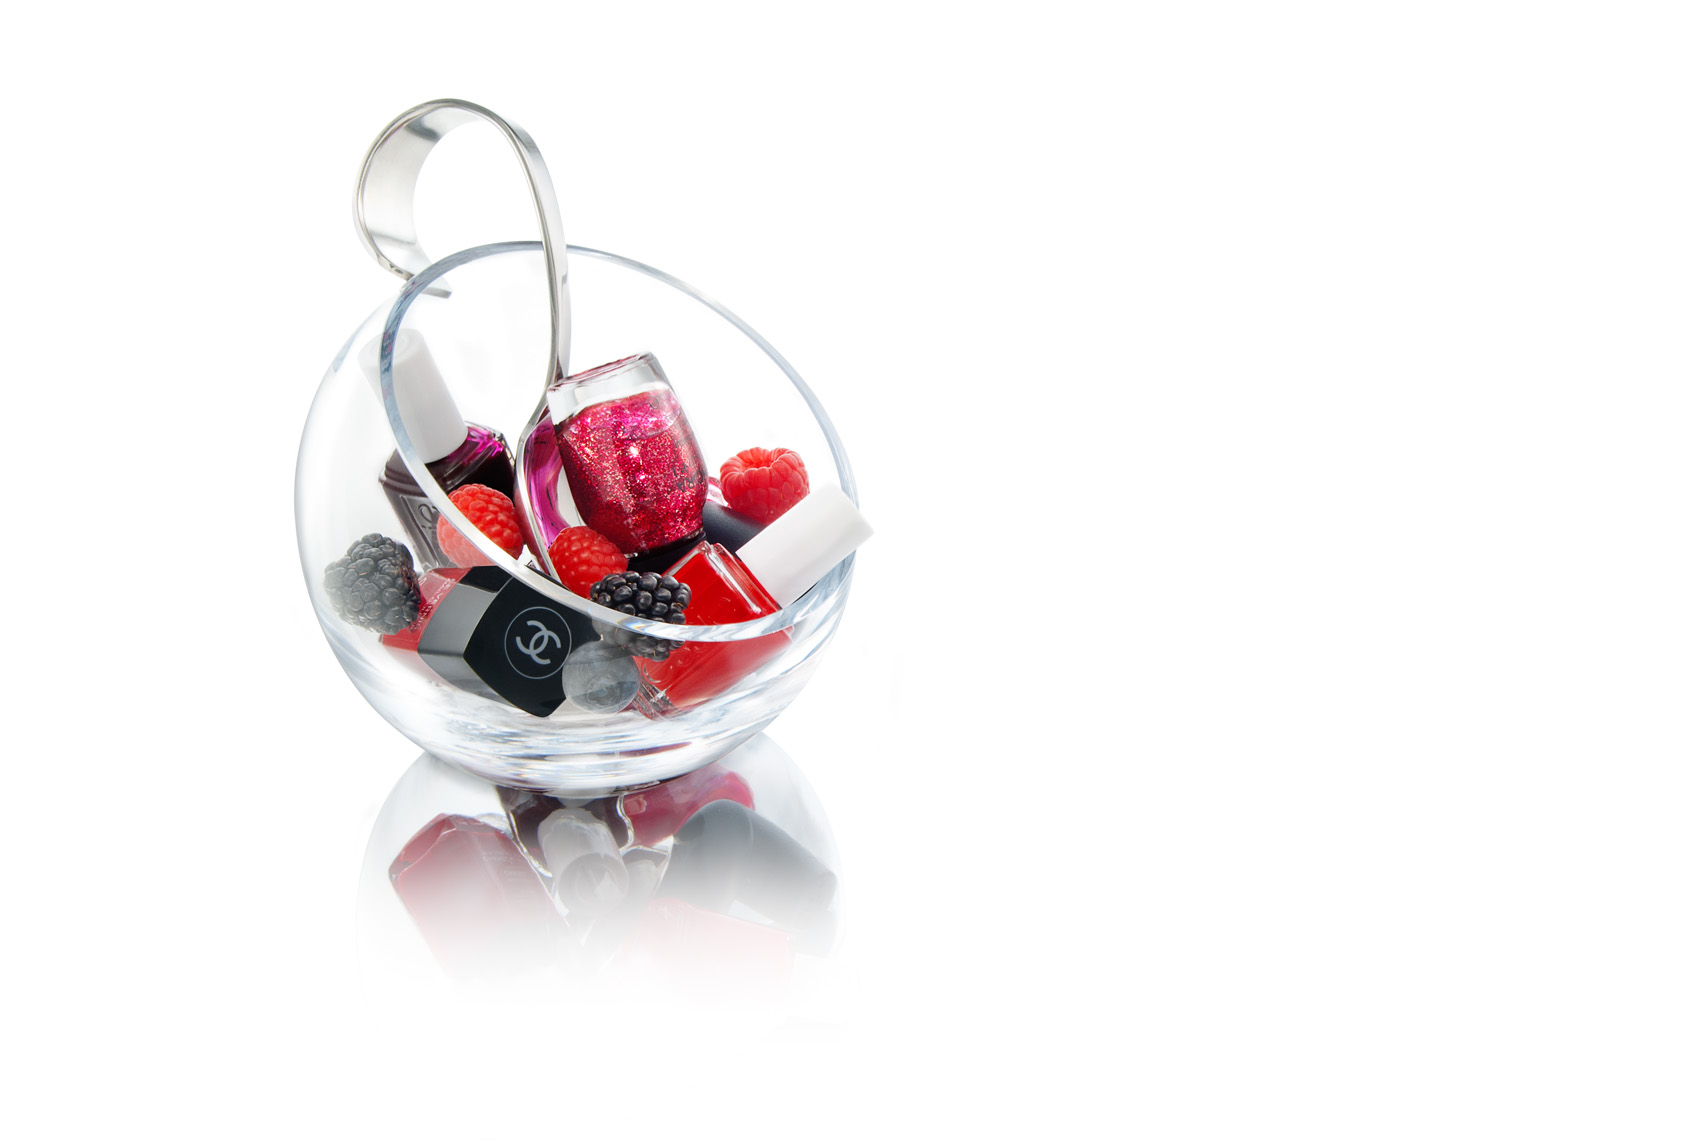 Nail_Polishes_In_Bowl_with_Berries